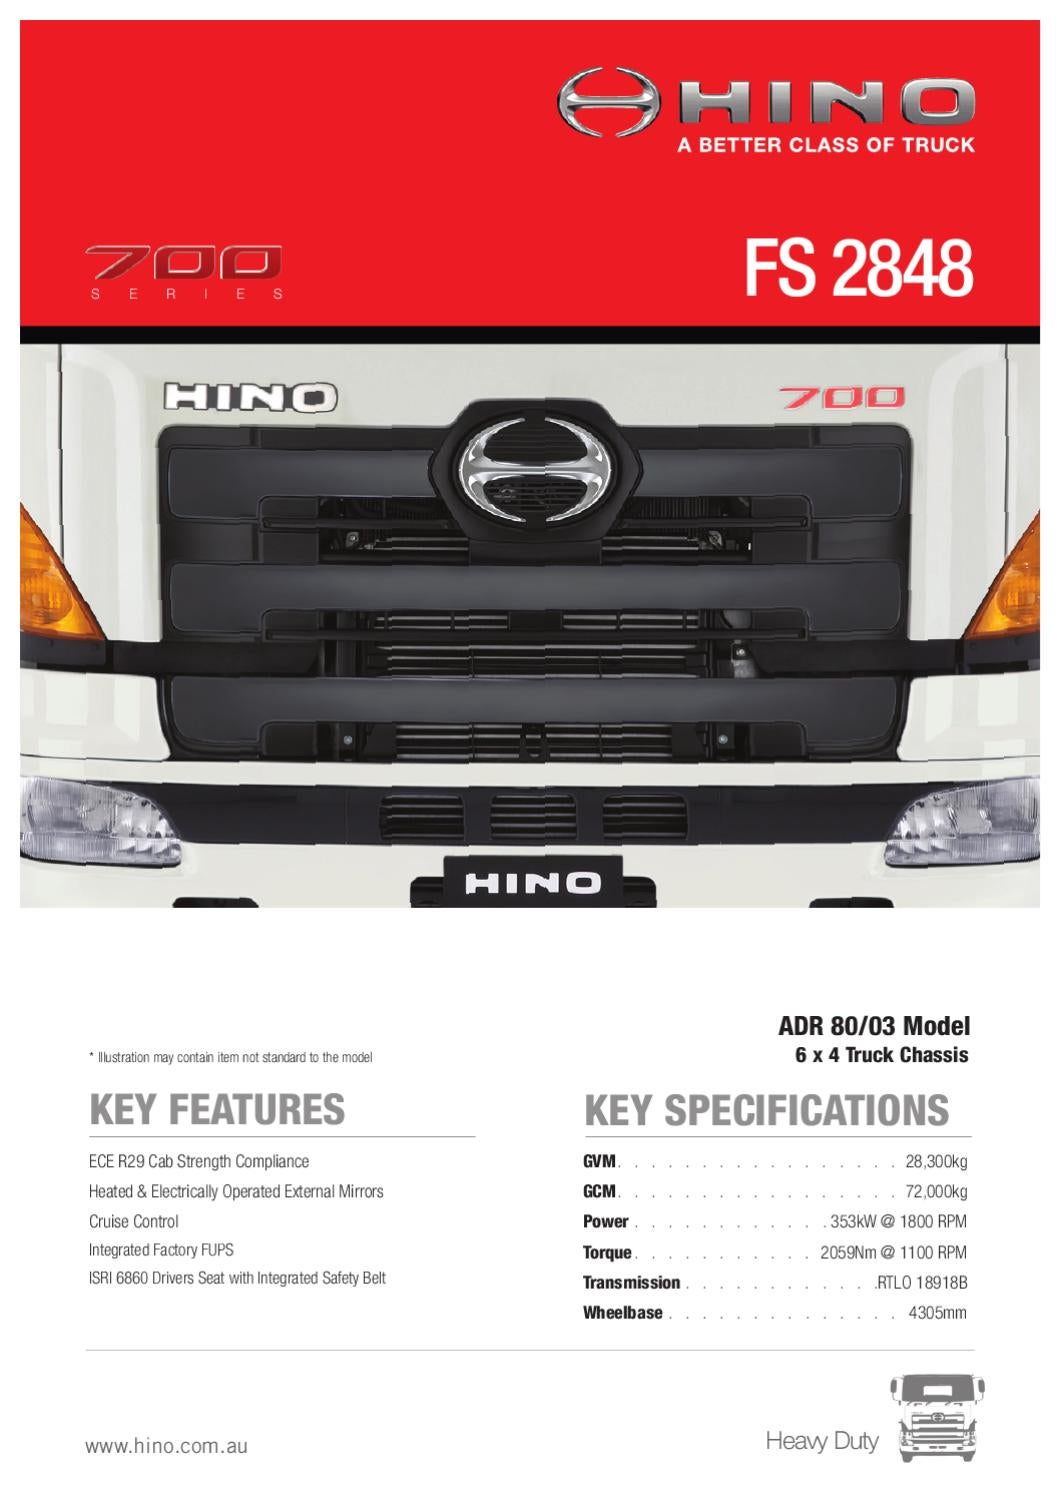 Hino 700 Series FS 2848 Spec Sheet by Justin Edwards - issuu